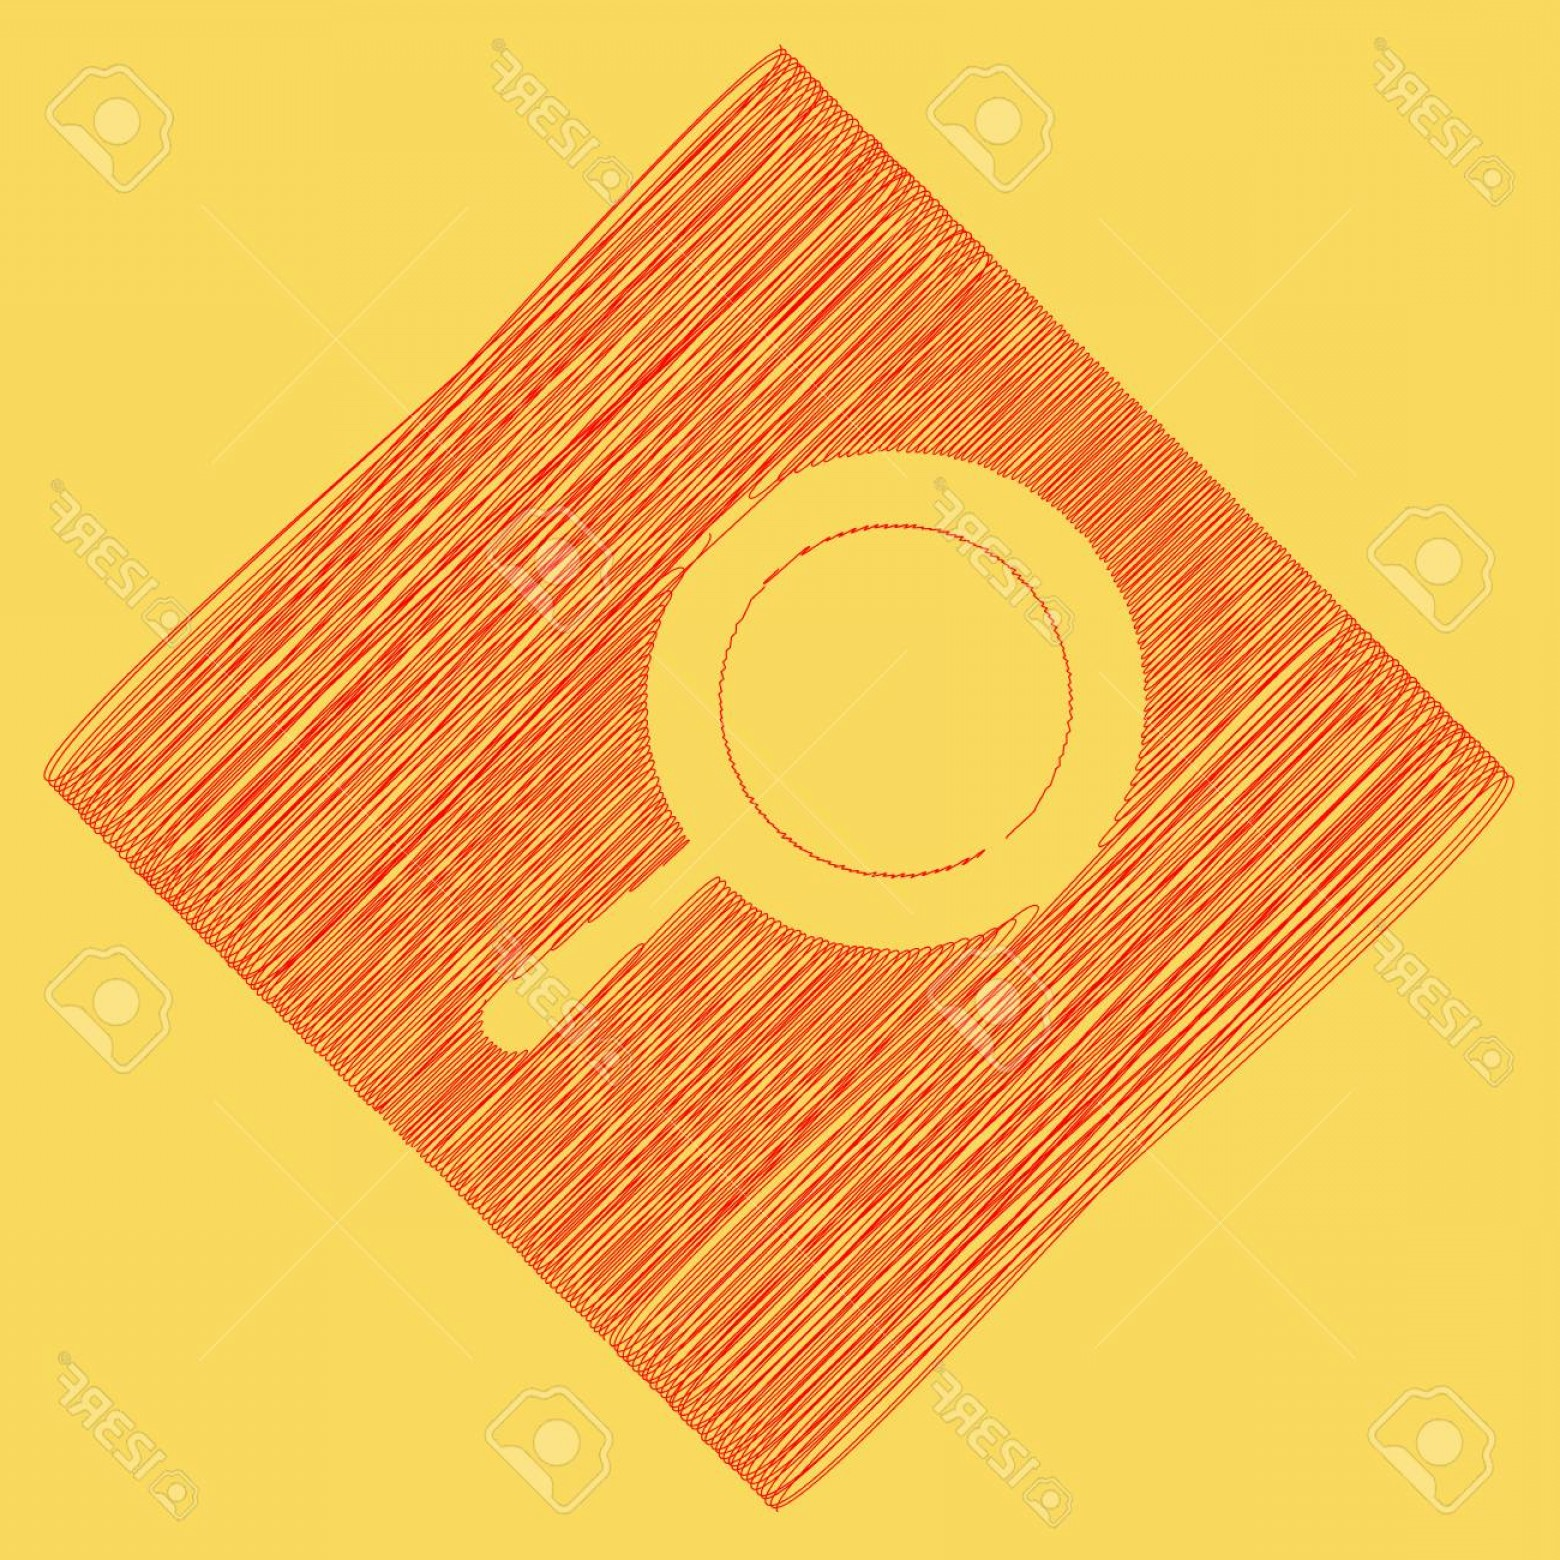 Subtracting Vectors BA: Photostock Vector Pan Sign Vector Red Scribble Icon Obtained As A Result Of Subtraction Rhomb And Path Royal Yellow Ba